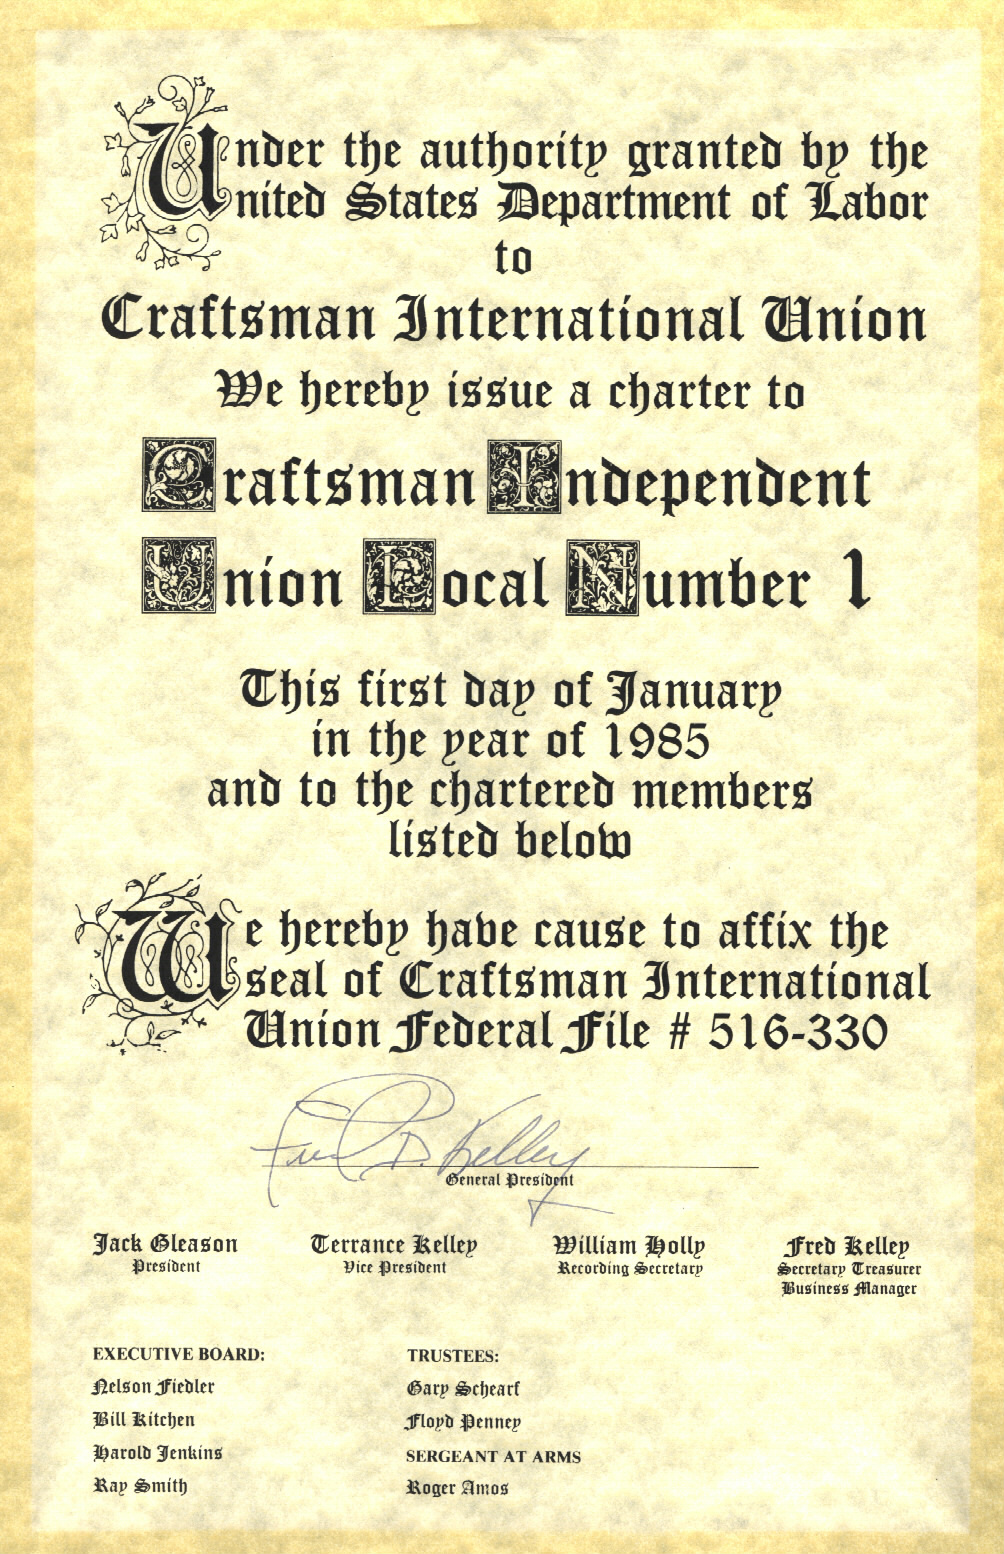 Charter Document